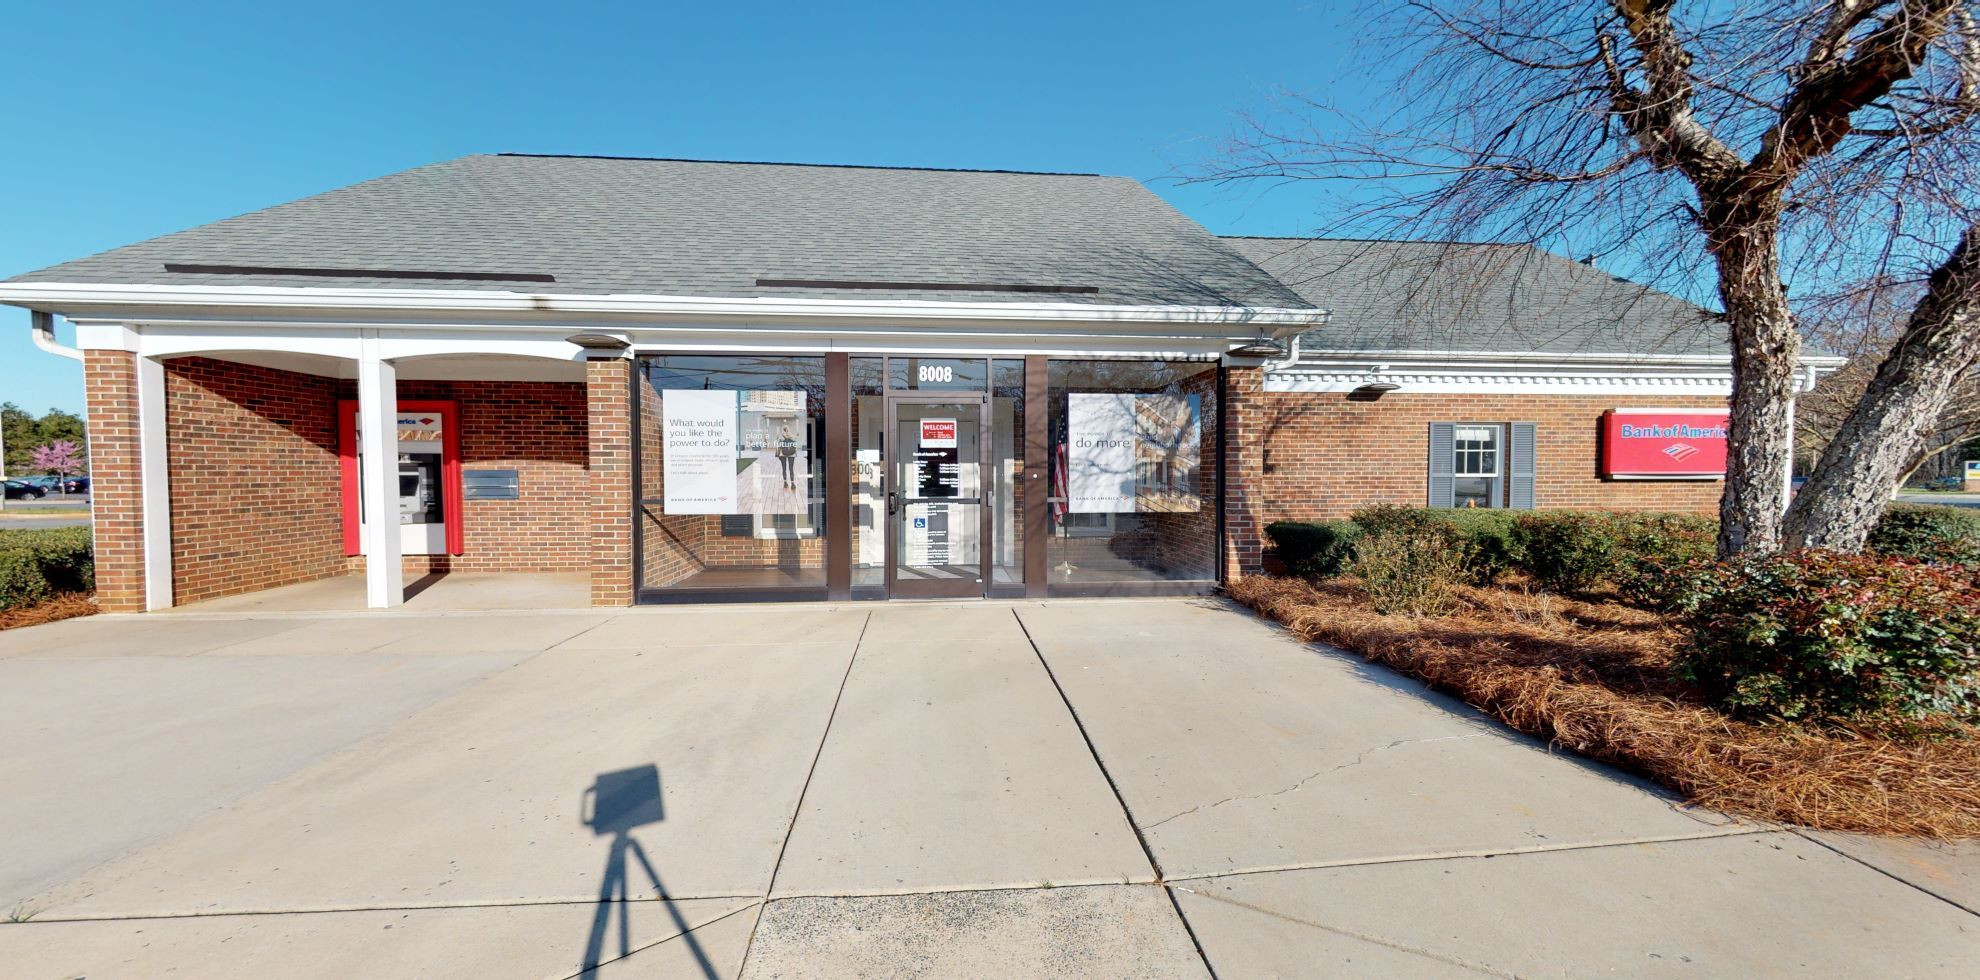 Bank of America financial center with drive-thru ATM and teller | 8008 Blair Rd, Charlotte, NC 28227